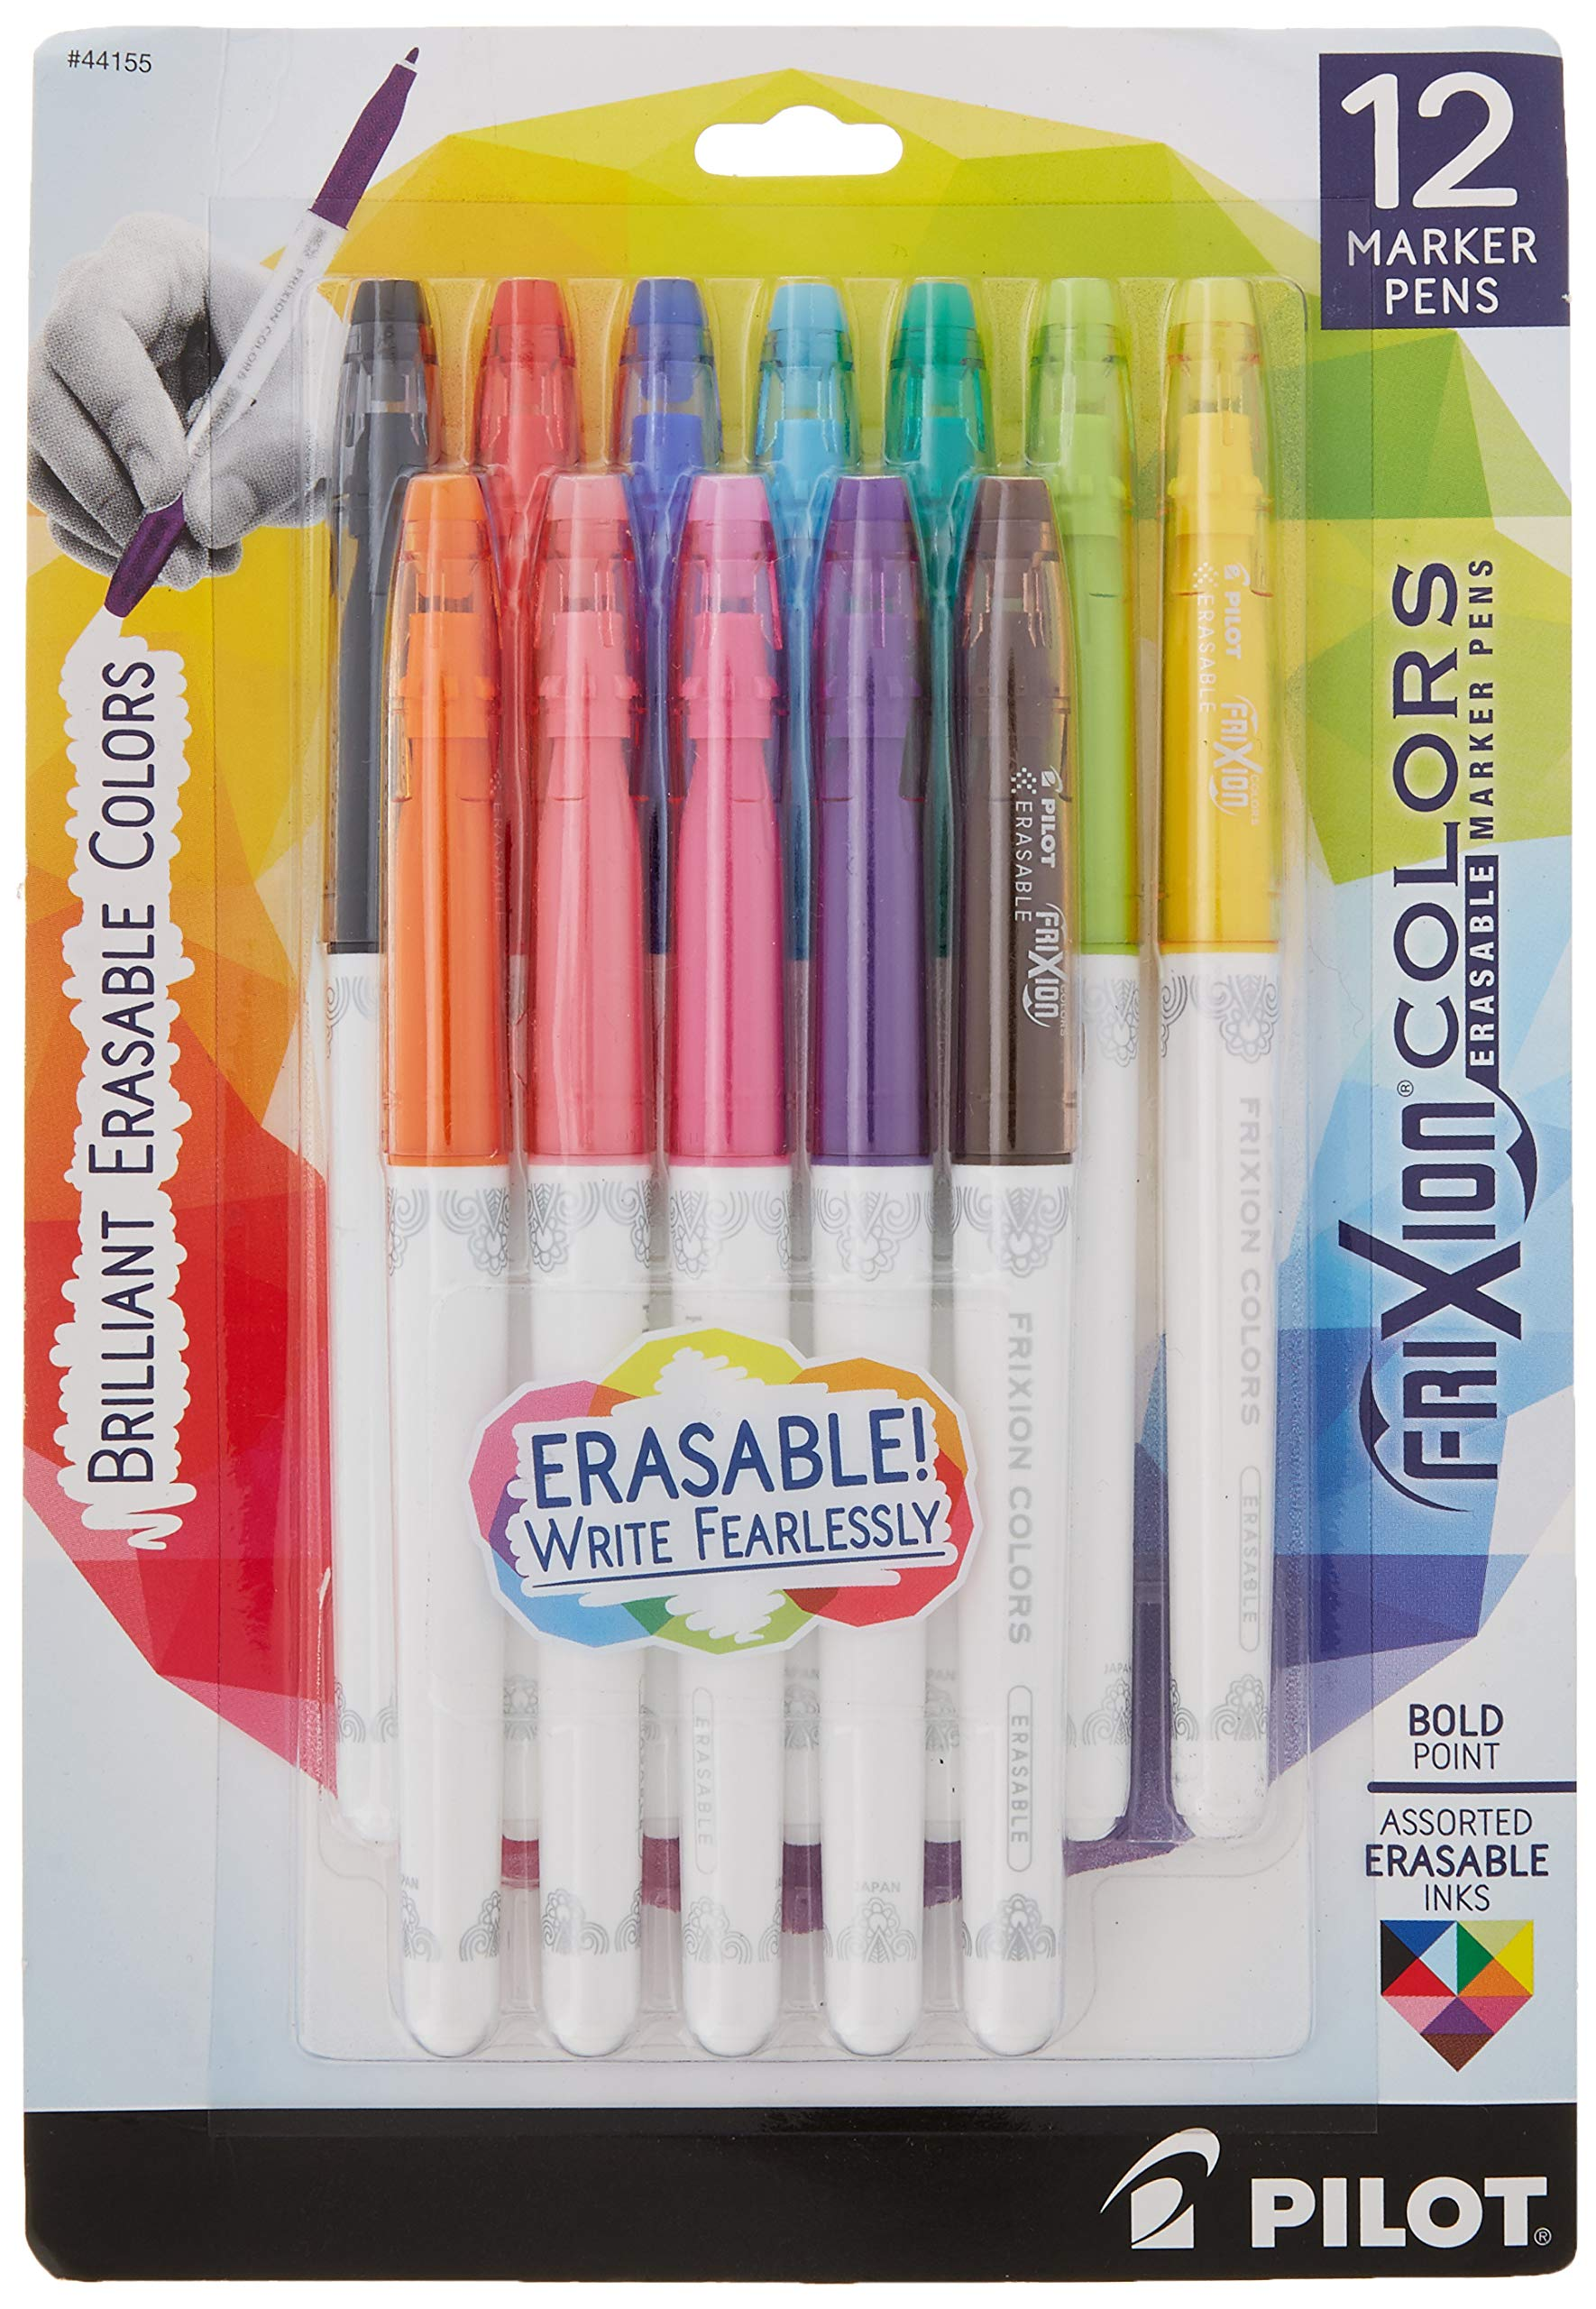 Pilot FriXion Colors Erasable Marker Pen Bold Point (1.) Assorted Ink 12-pk; Too Much, Uneven, or The Wrong Color of Marker? Make Mistakes Disappear with America's #1 Selling Pen Brand by Pilot